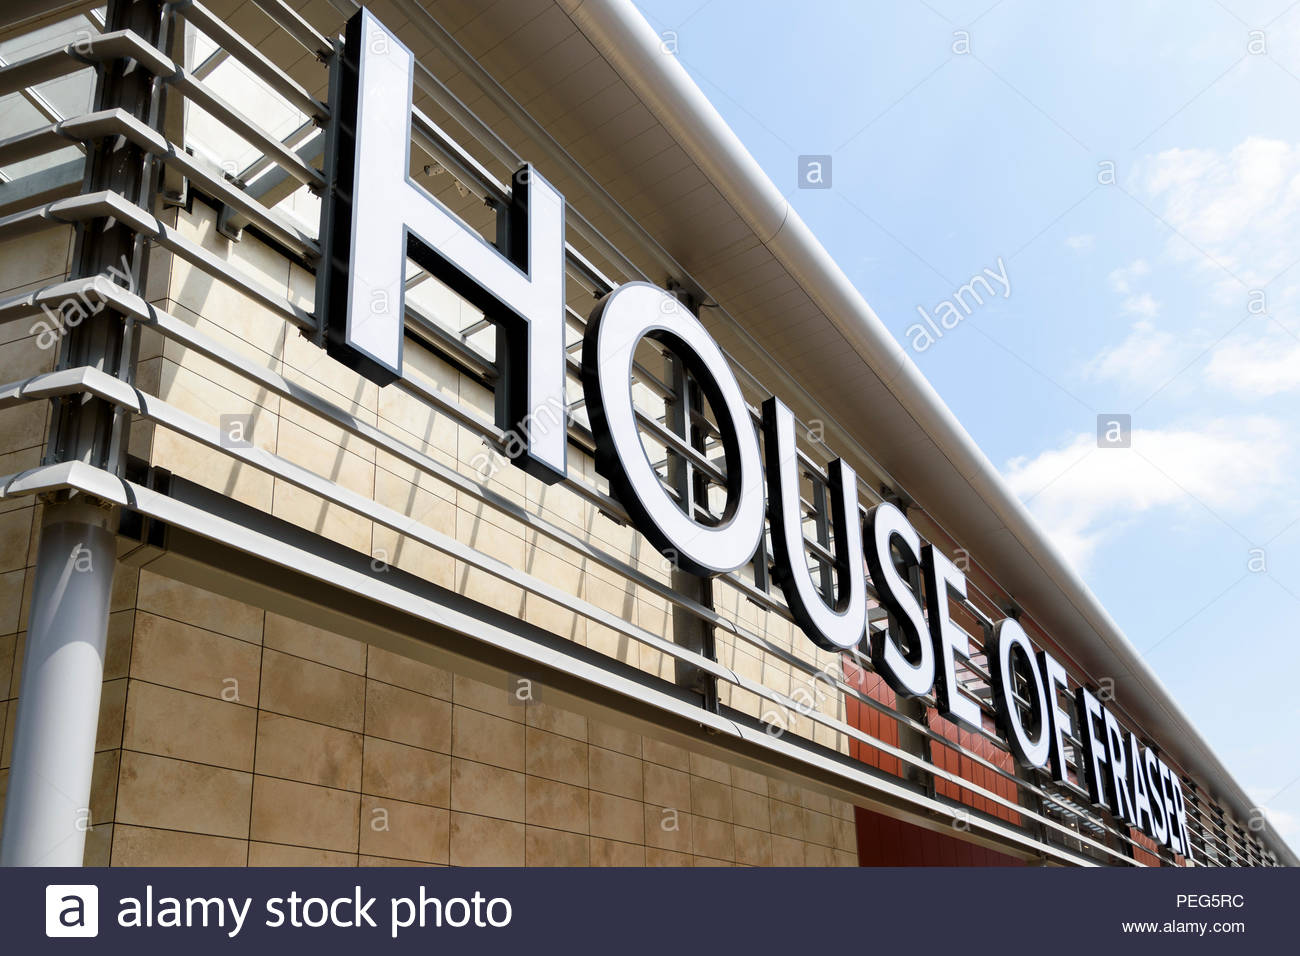 House Of Fraser sign above a new store in Rushden Lakes, Northamptonshire, England, UK - Stock Image